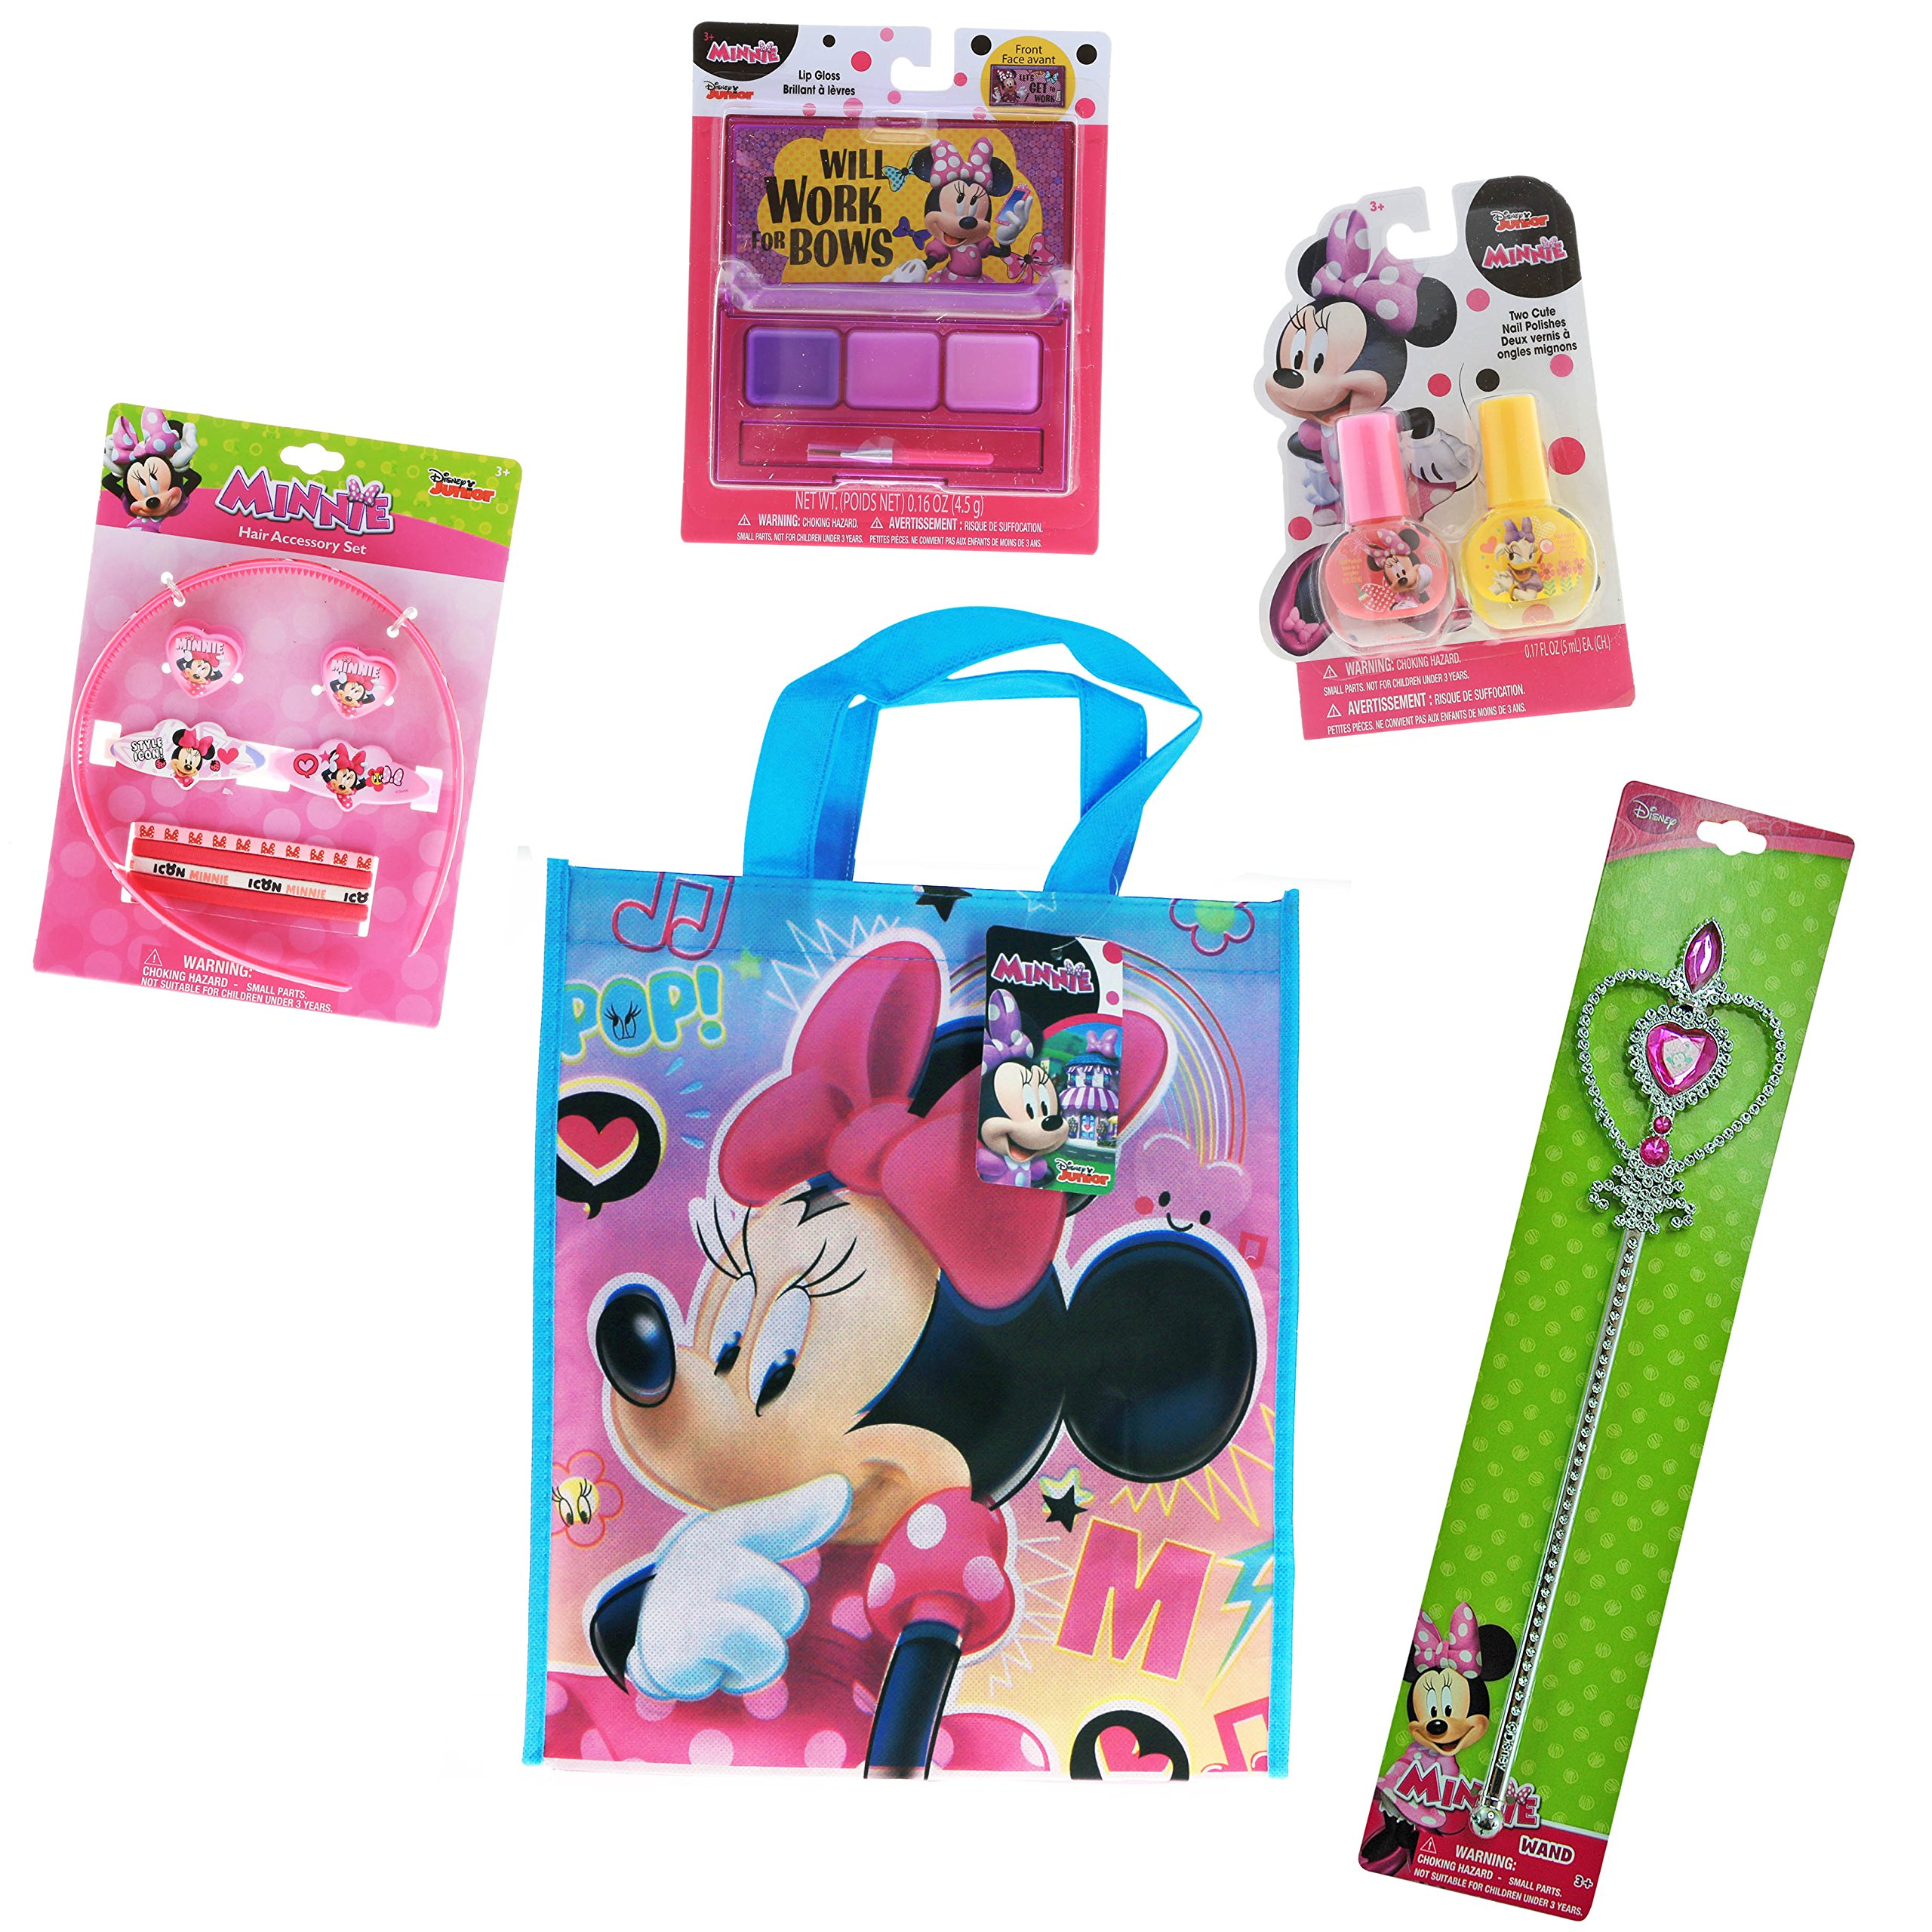 94c96219c536a Buy Kidplay Products Disney Minnie Mouse Girls Holiday Gift Set Pretend  Play Dress Up Toys Tote Bag in Cheap Price on m.alibaba.com